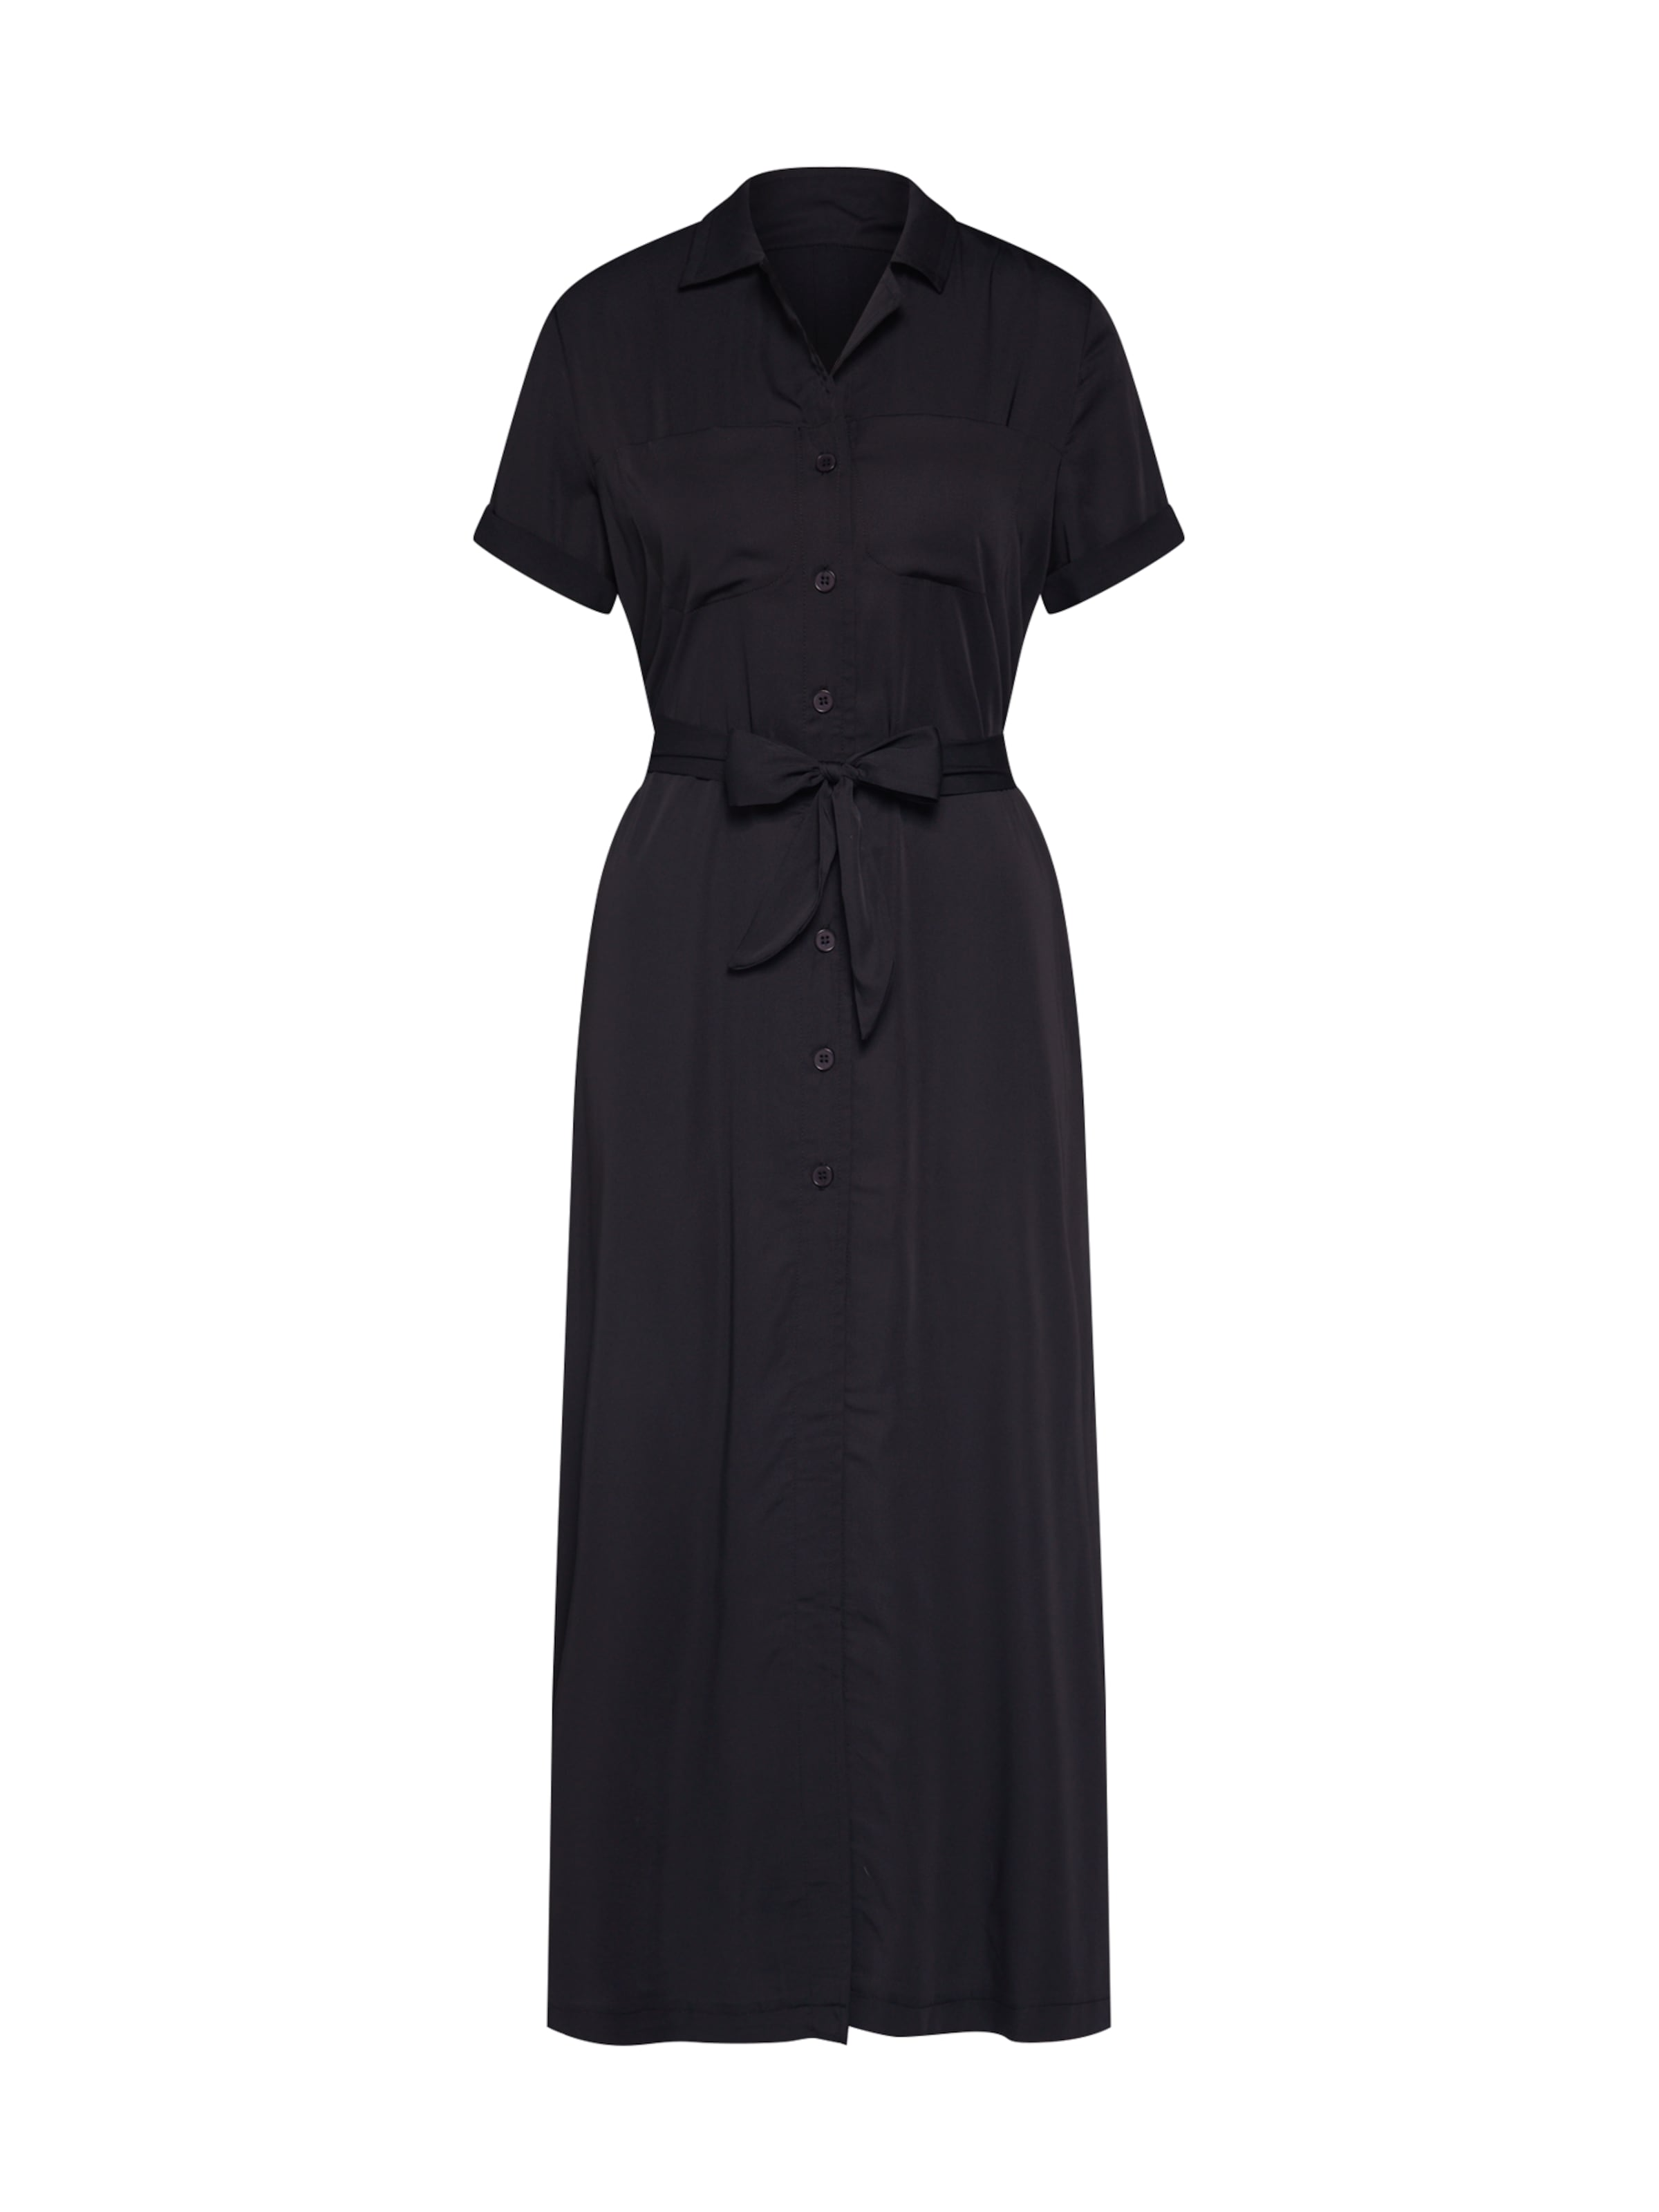 'ida' In Schwarz Kleid About Michalsky For You dhCtsxQr